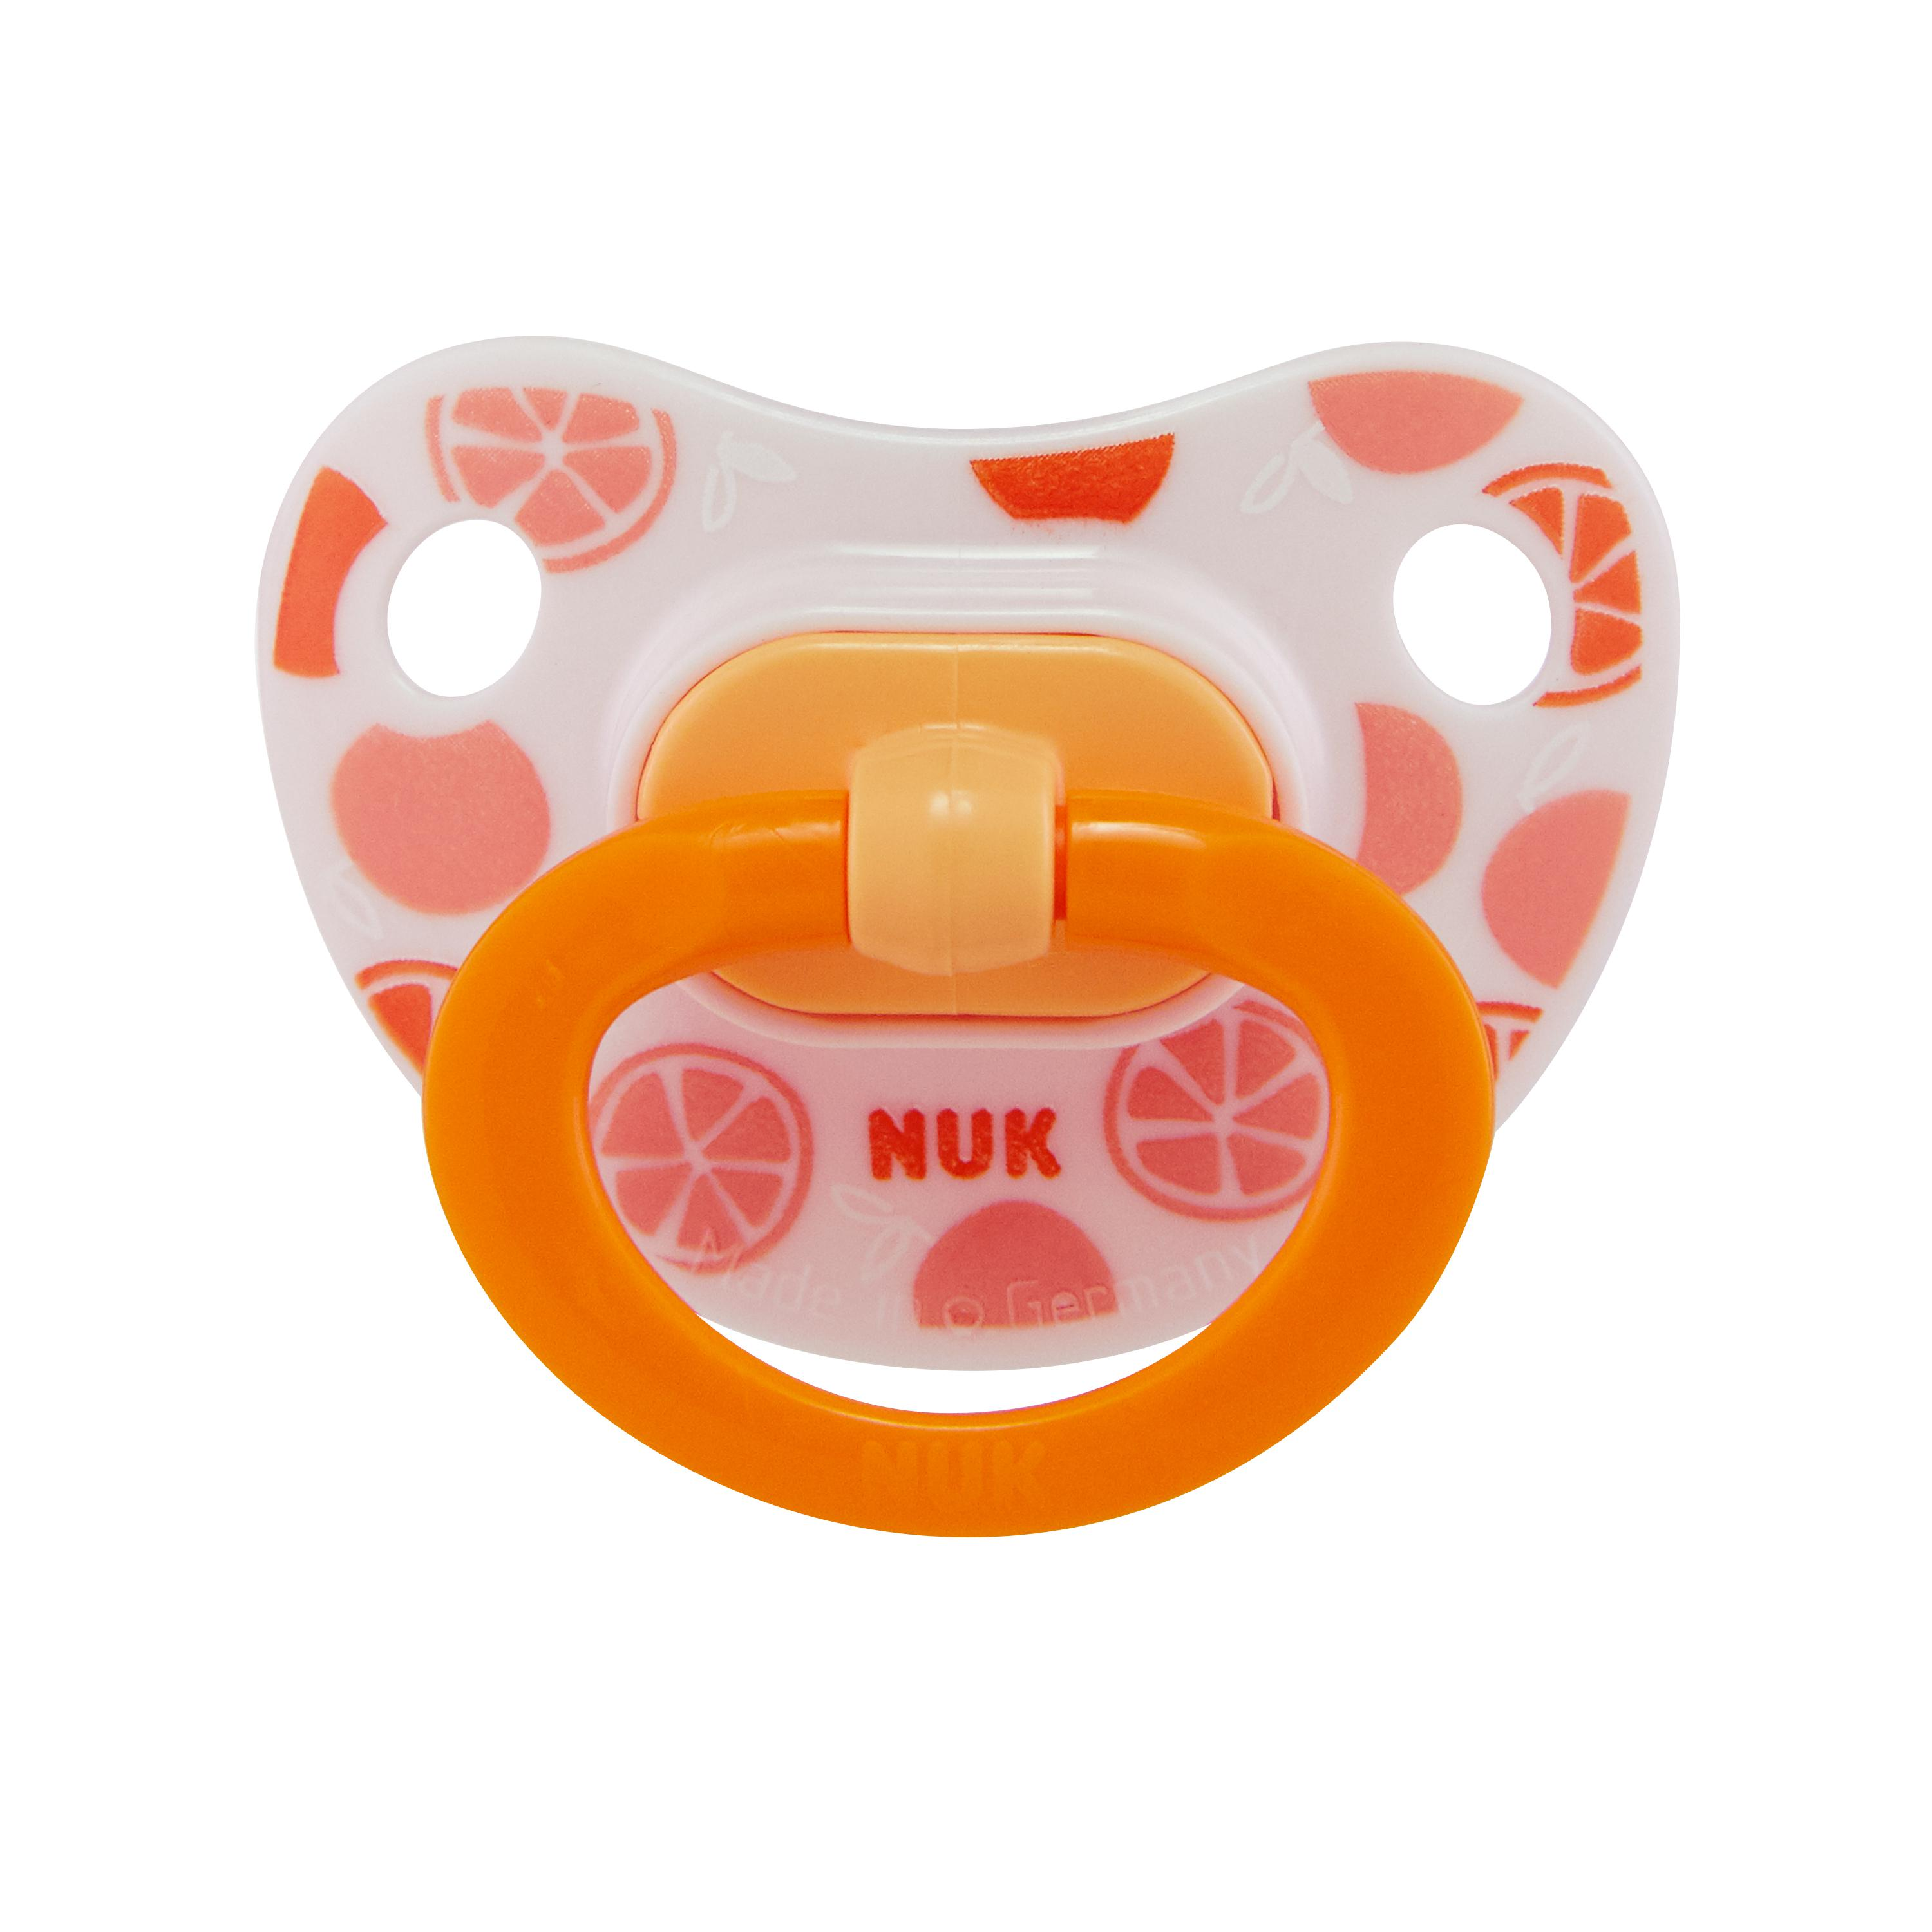 NUK® Orthodontic Pacifiers, 6-18 Months, 2-Pack Product Image 3 of 7